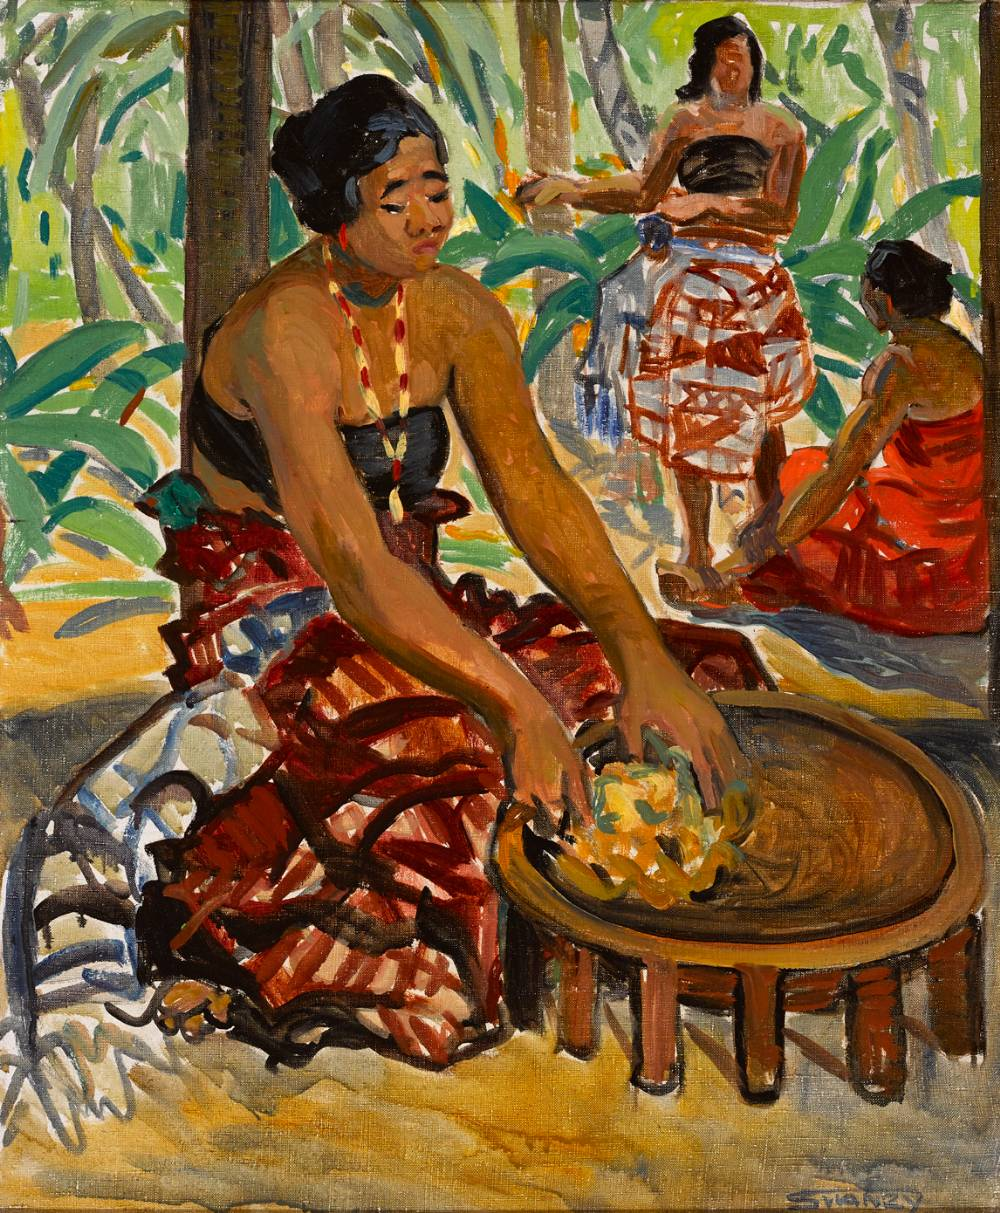 PREPARING THE MEAL, SAMOA, c. 1919-25 by Mary Swanzy sold for €48,000 at Whyte's Auctions